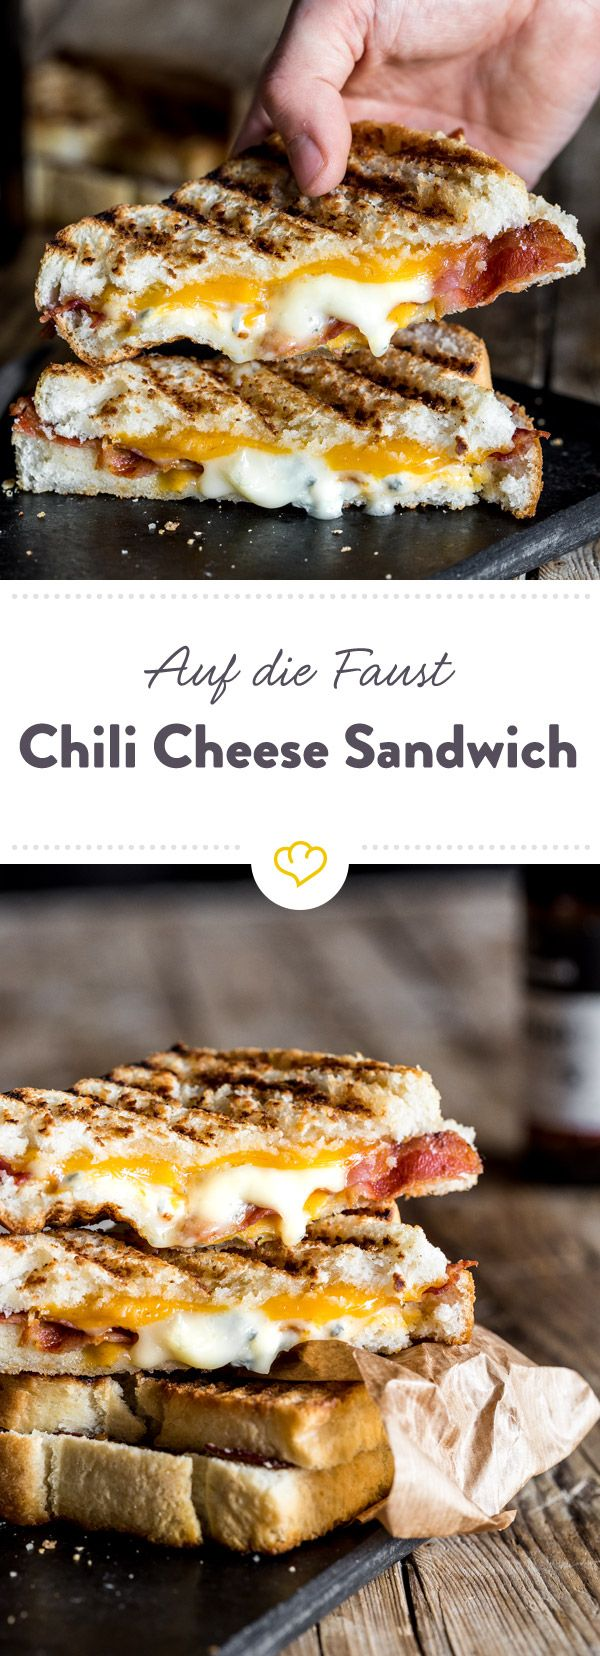 Photo of On the fist – chili cheese sandwich